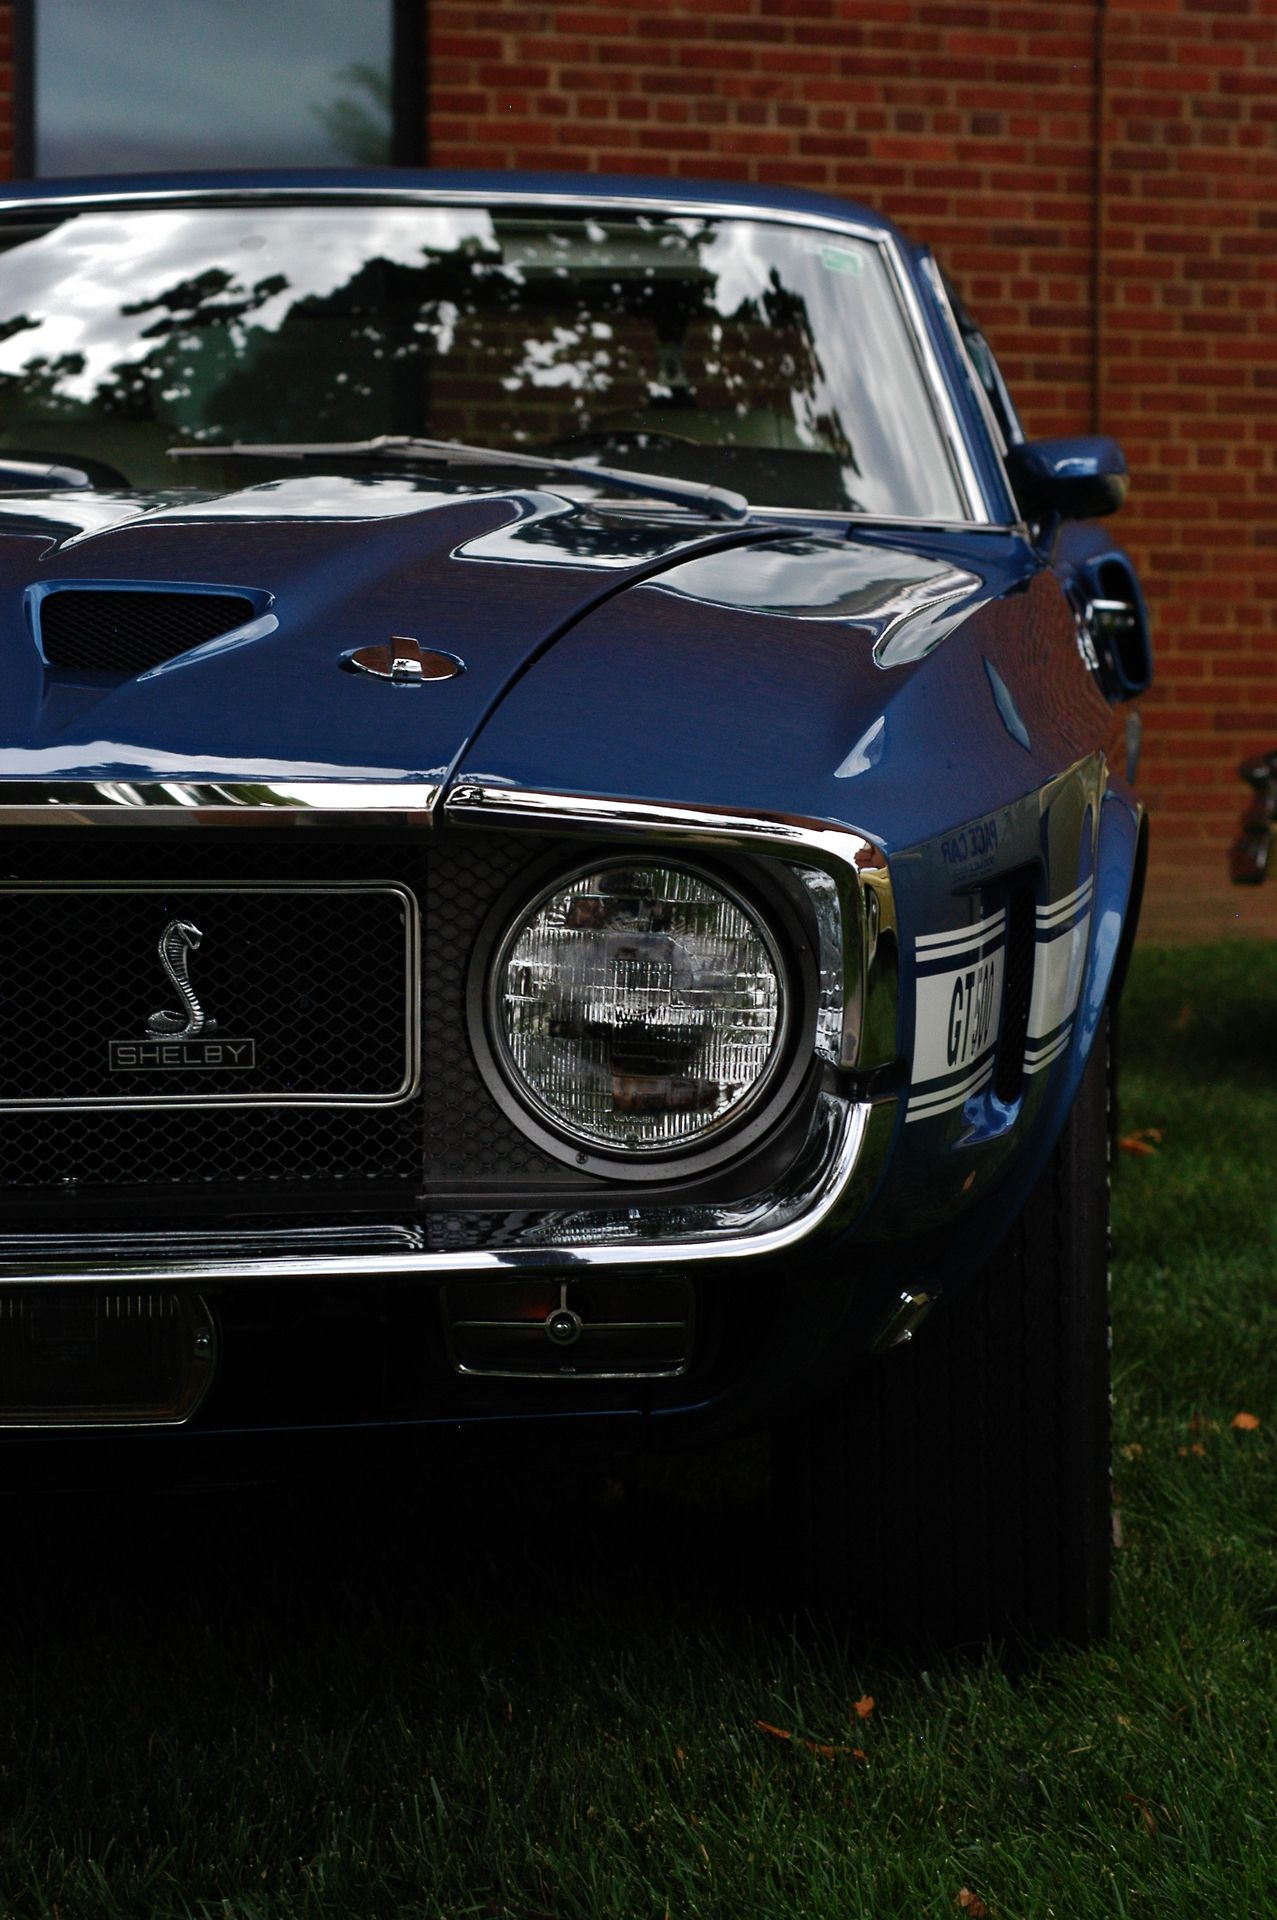 Motor City Cars Imports, Exotics, and Muscle Classic